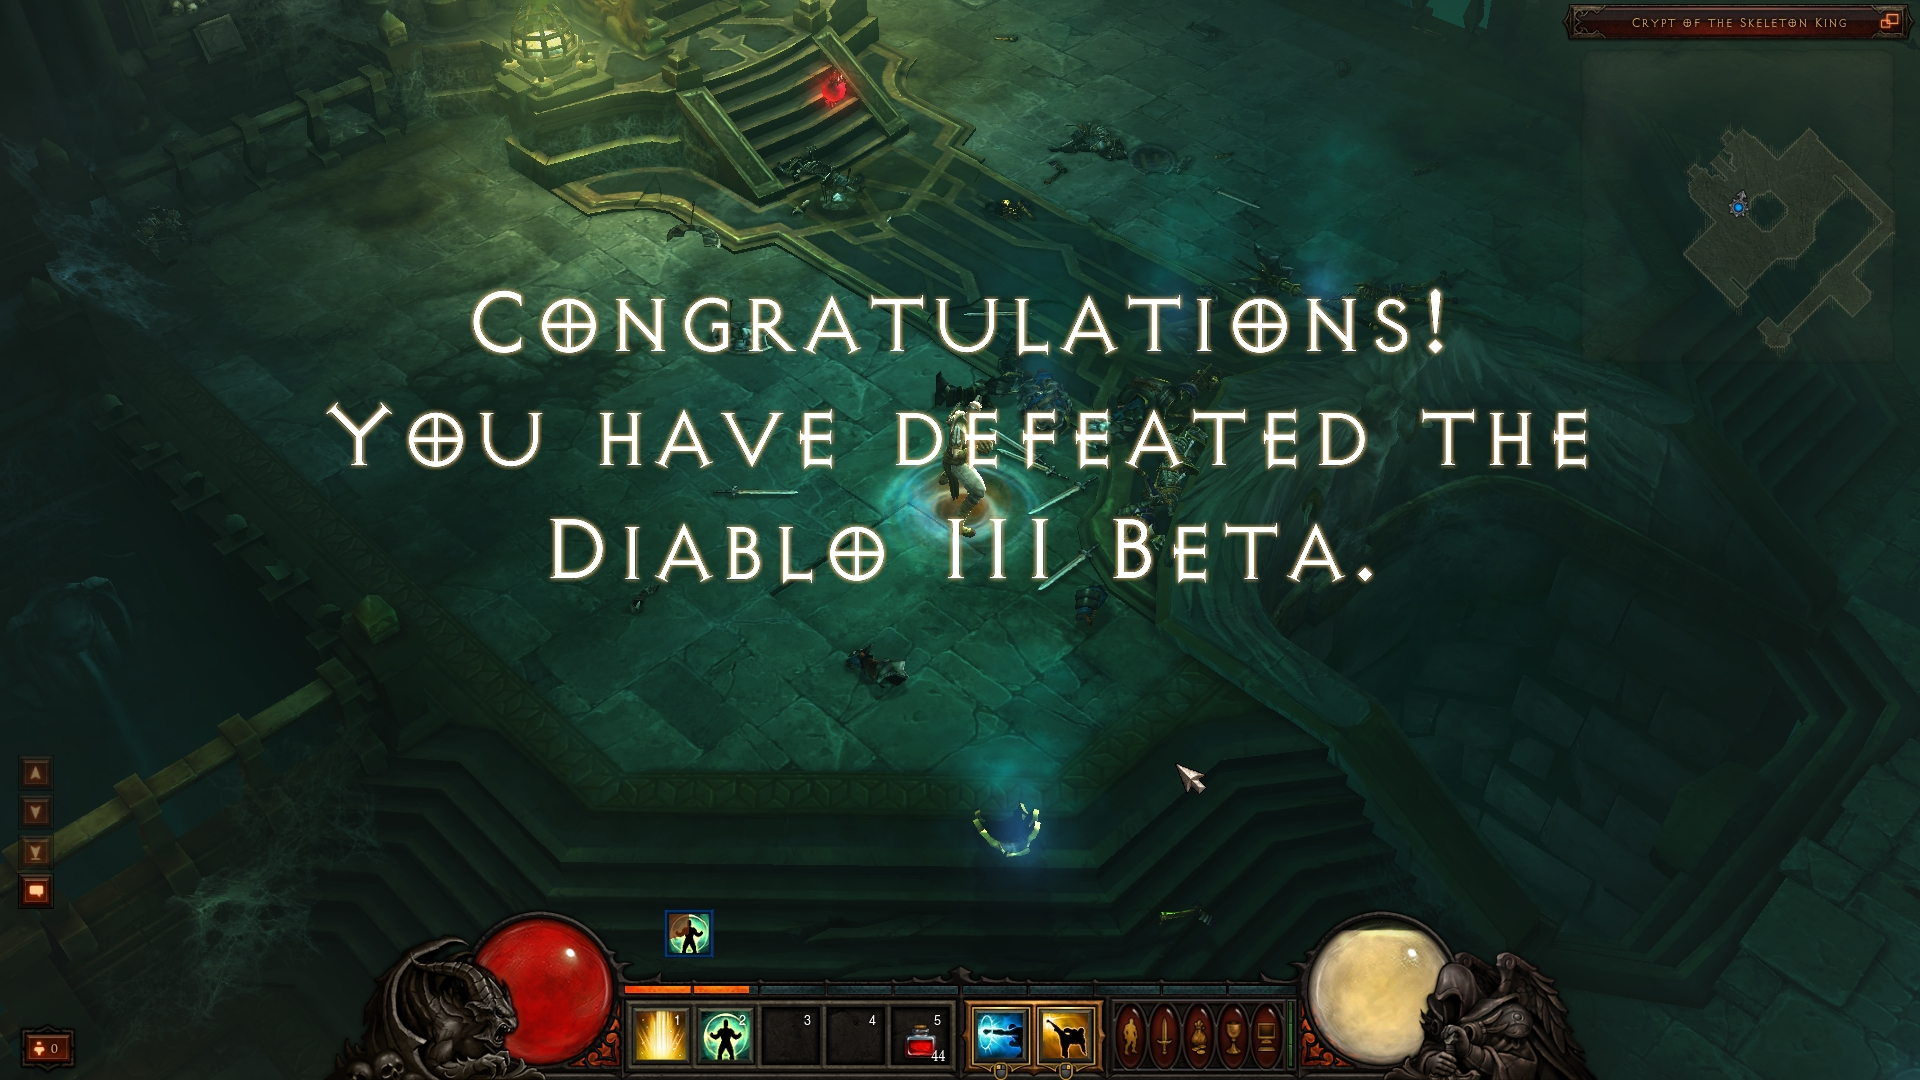 Diablo 3 End of Beta